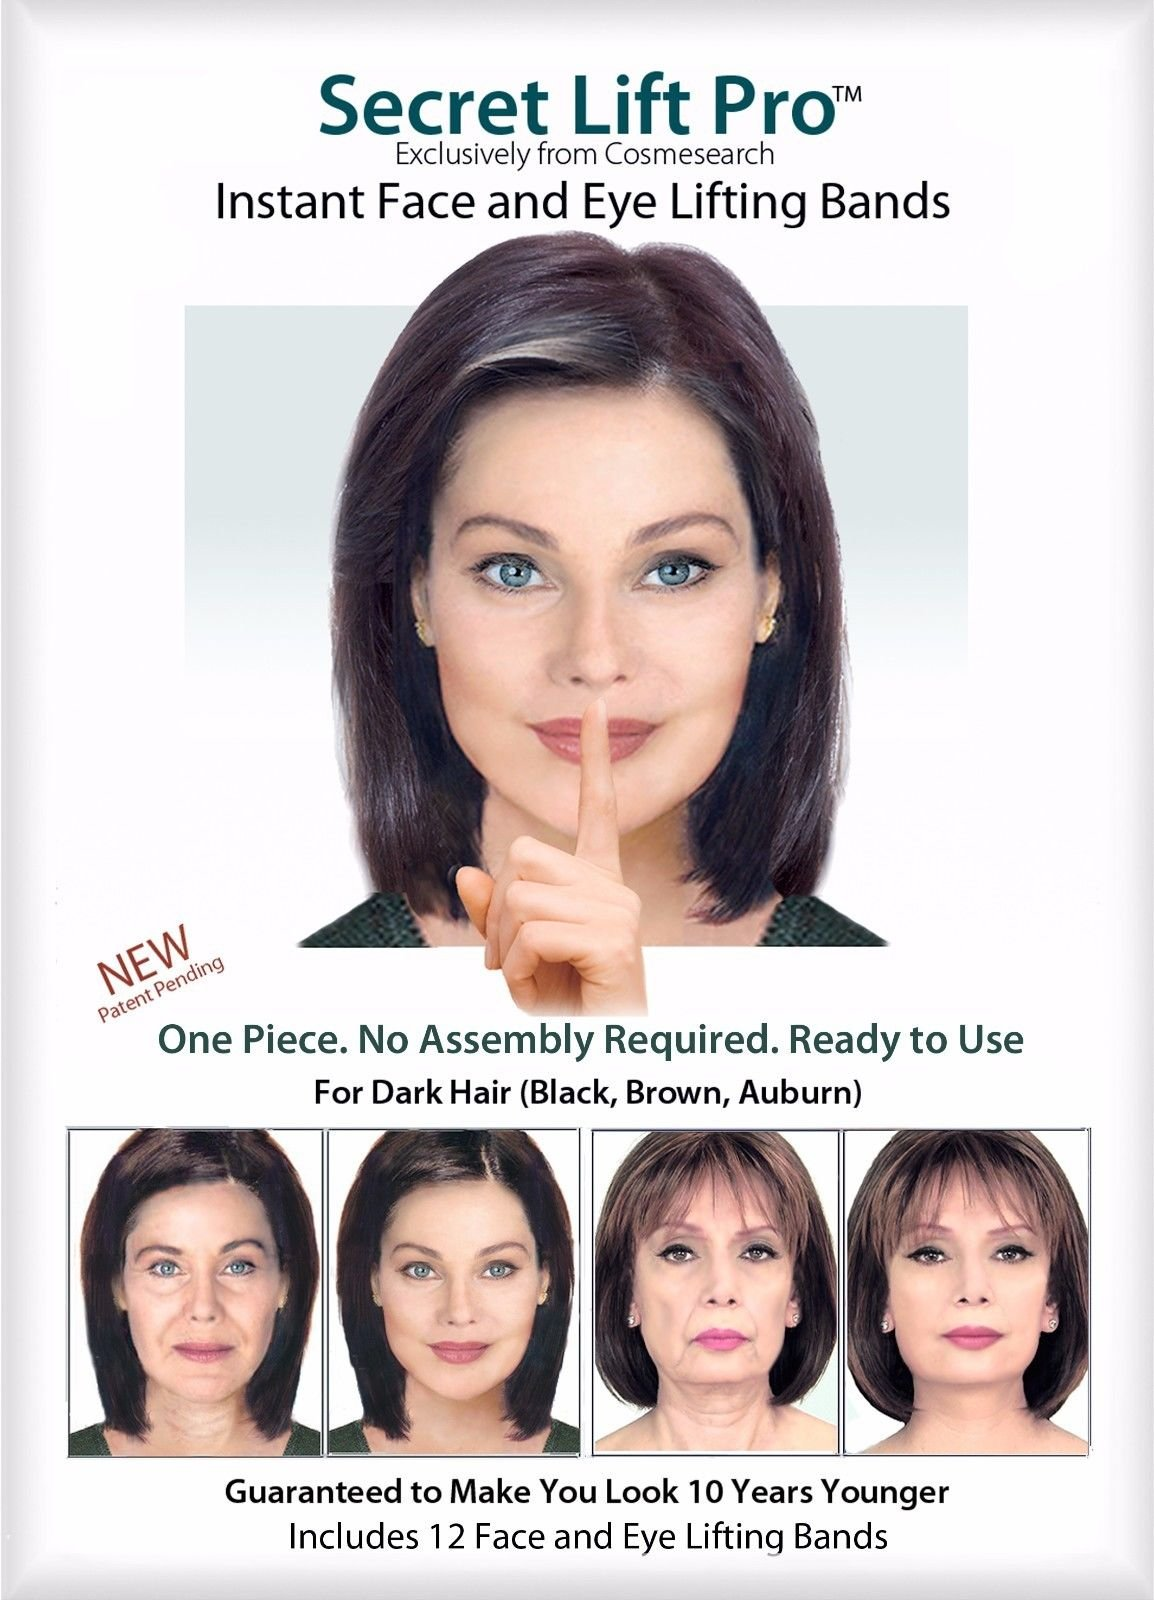 Secret Lift Pro - Face and Eye Lift (Dark Hair)